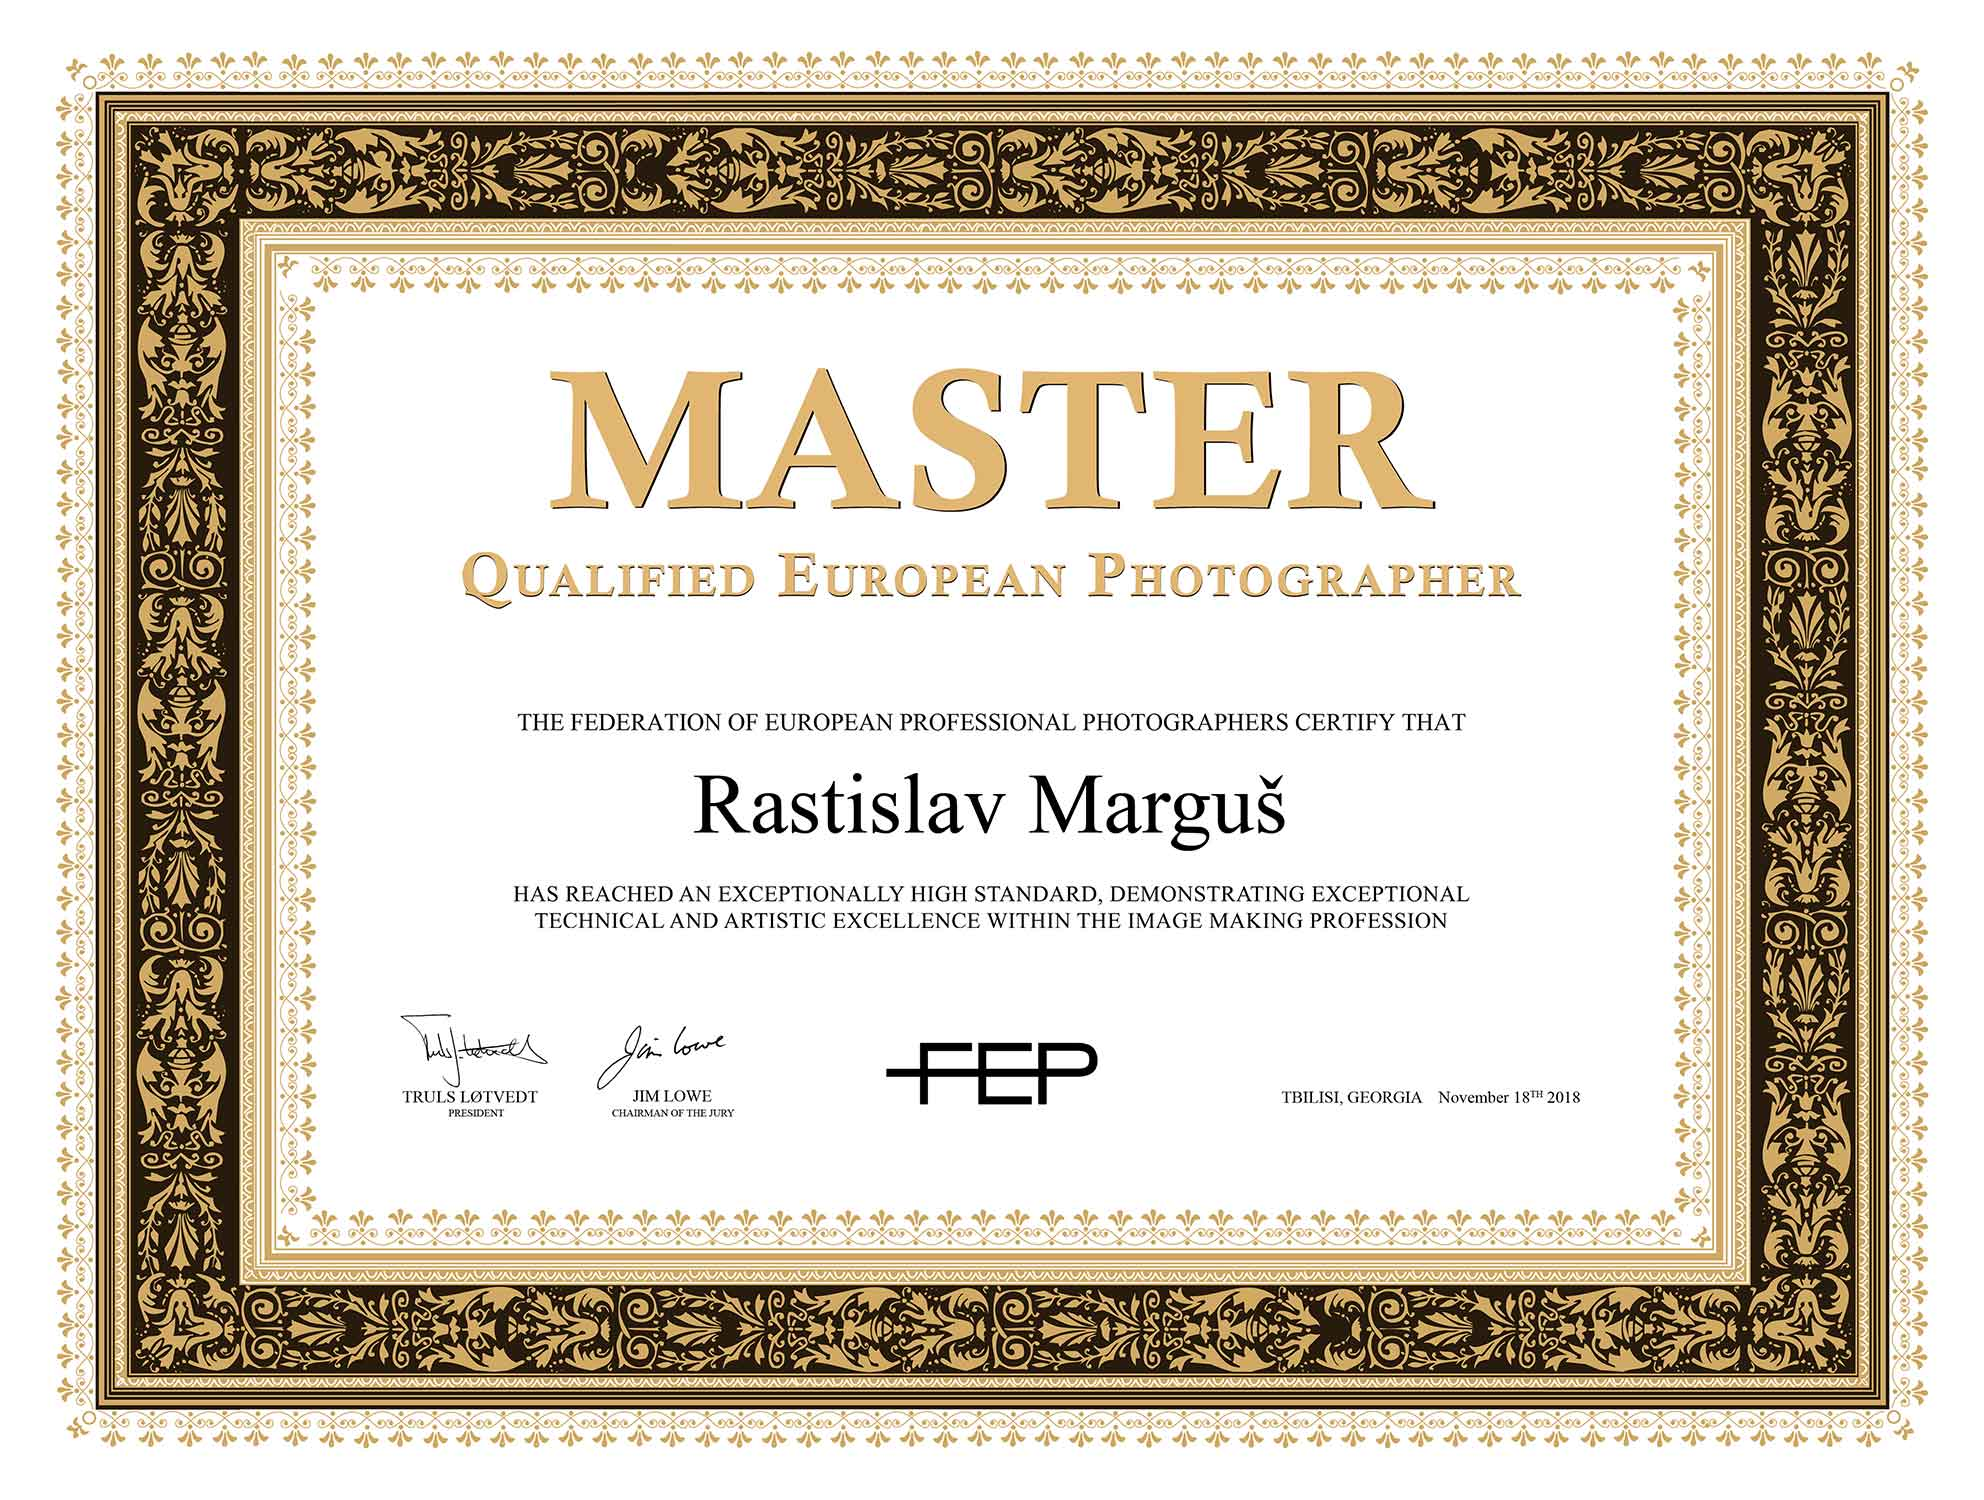 Master Qualified European Photographer Certificate